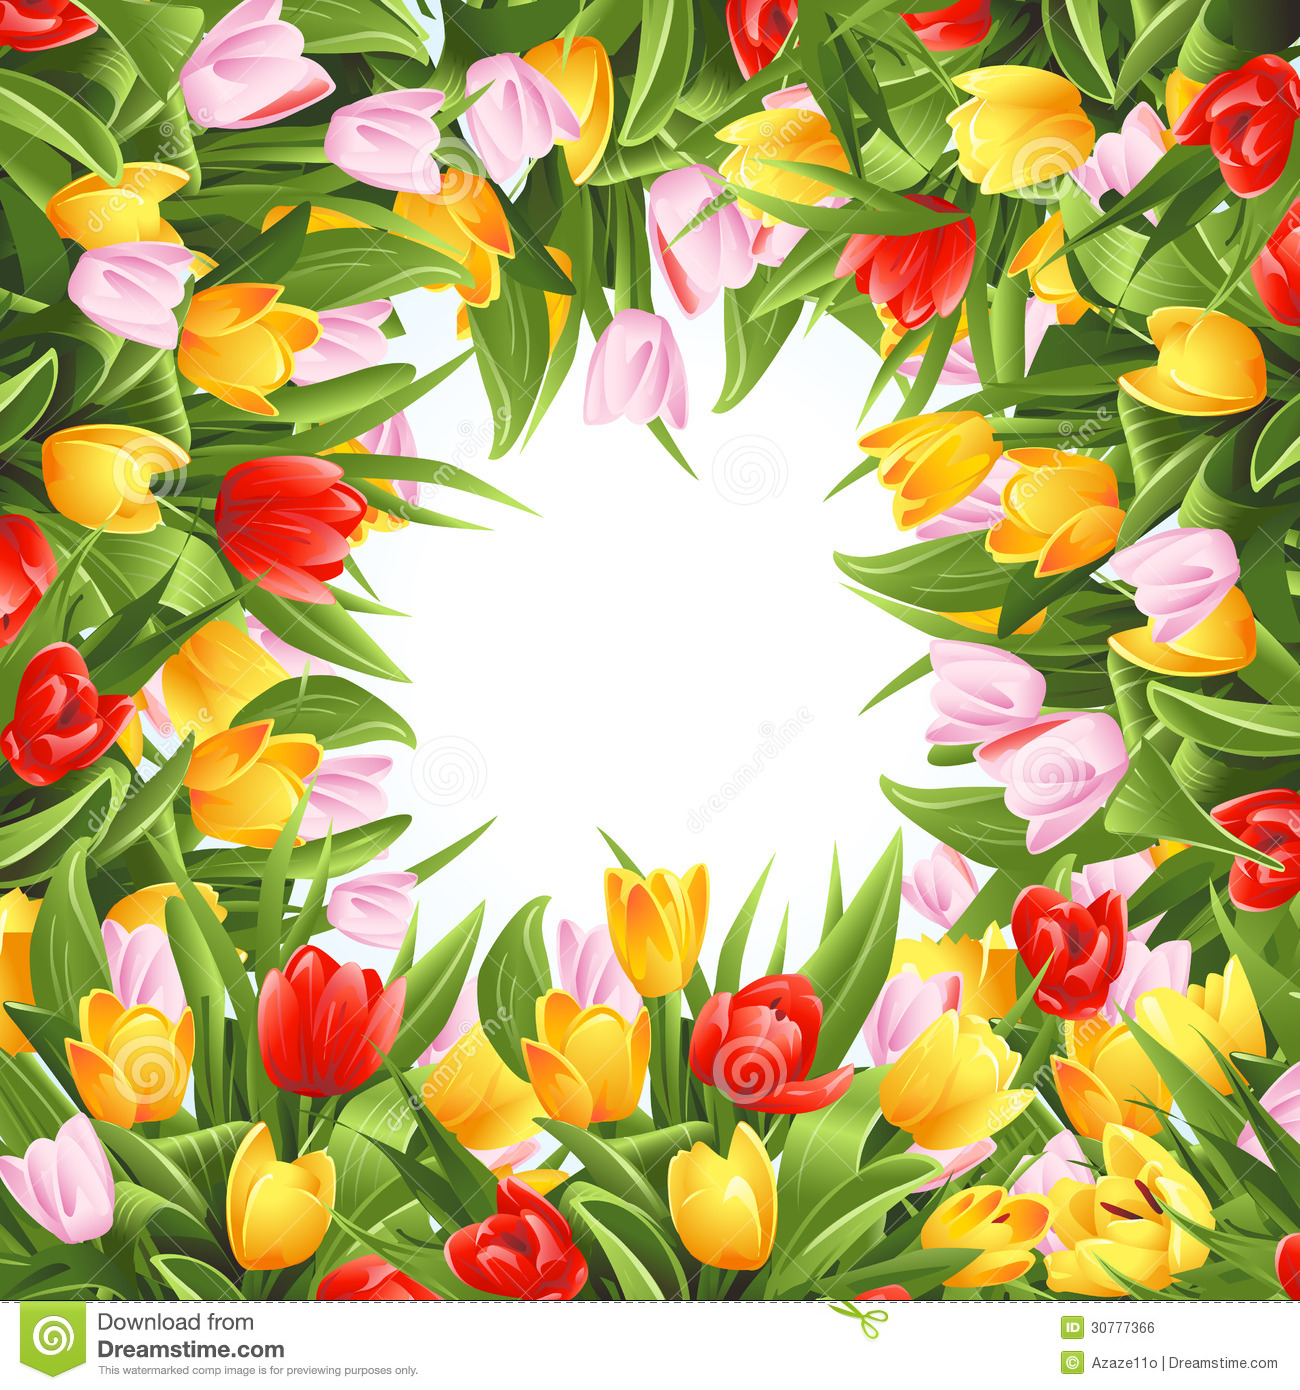 flower background with tulips royalty free stock image